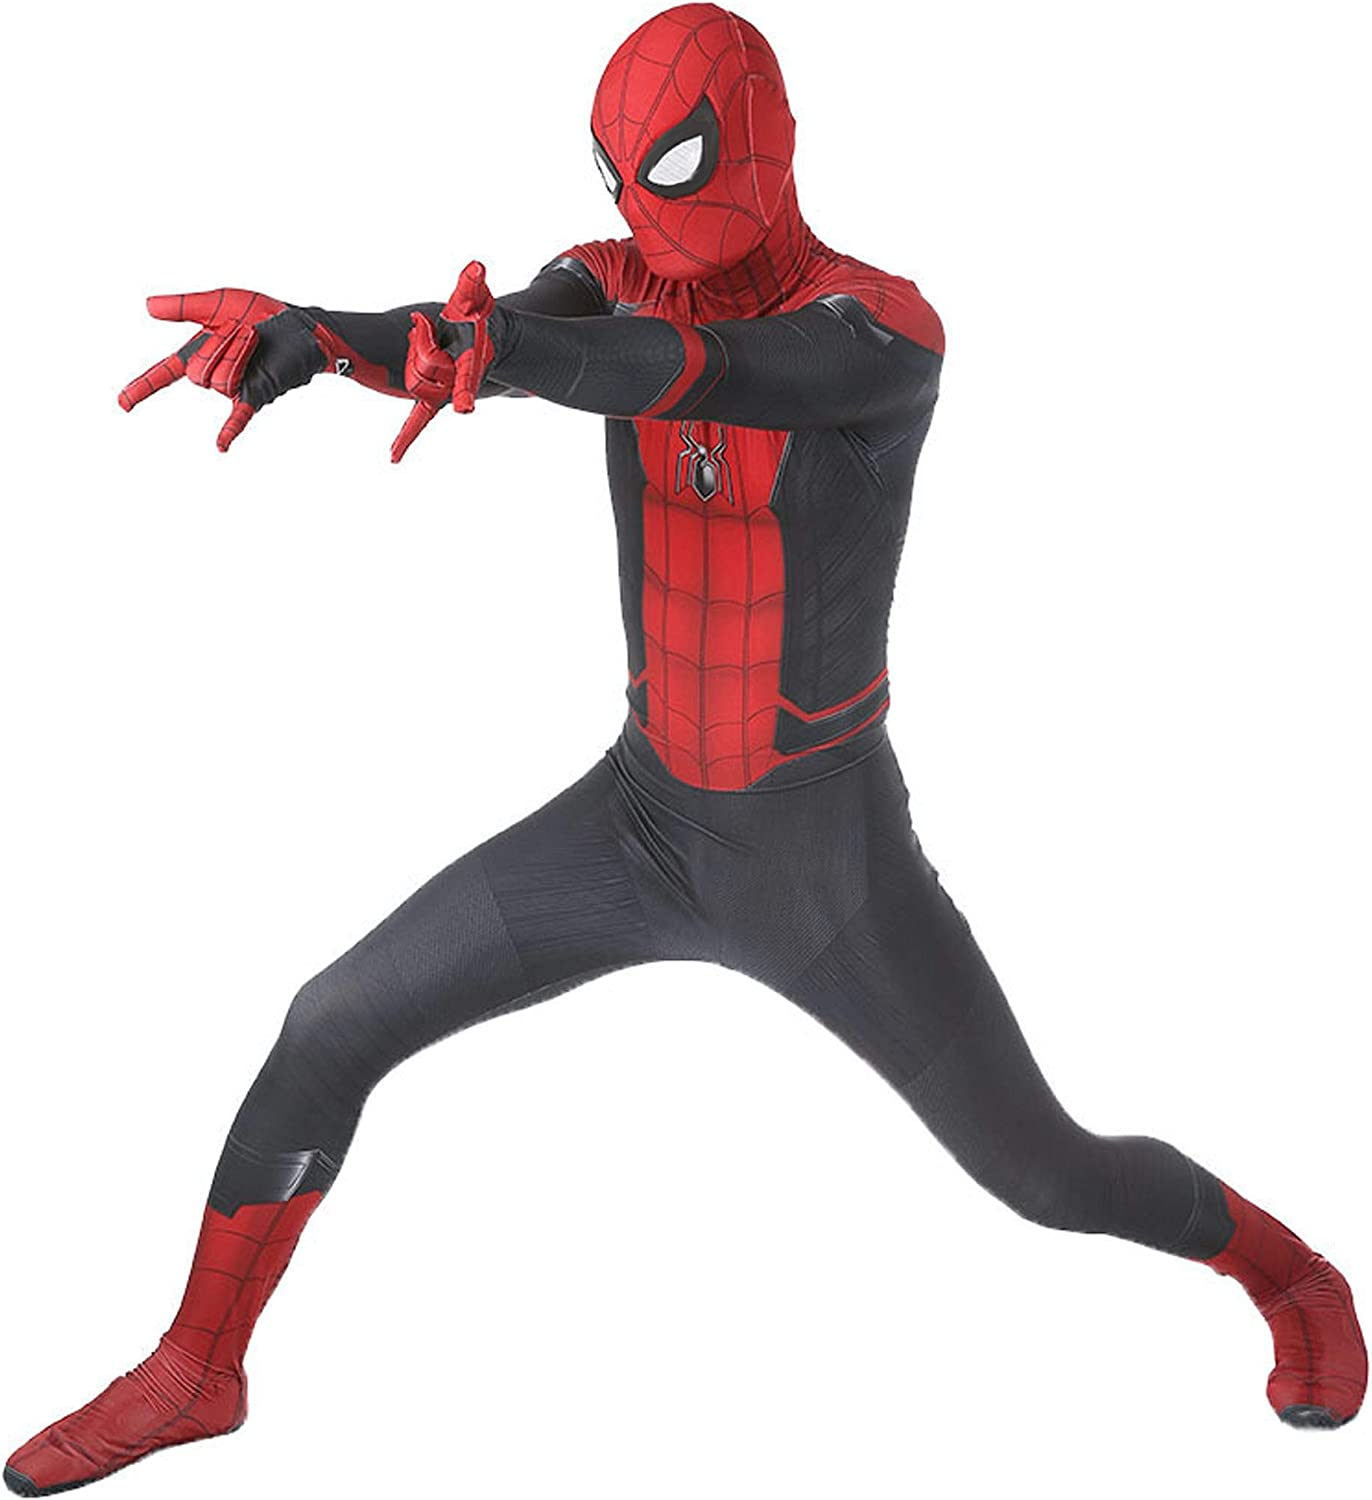 Blis Spiderman Far from Home Halloween Costume Unisex Adult Kids Cosplay Suit